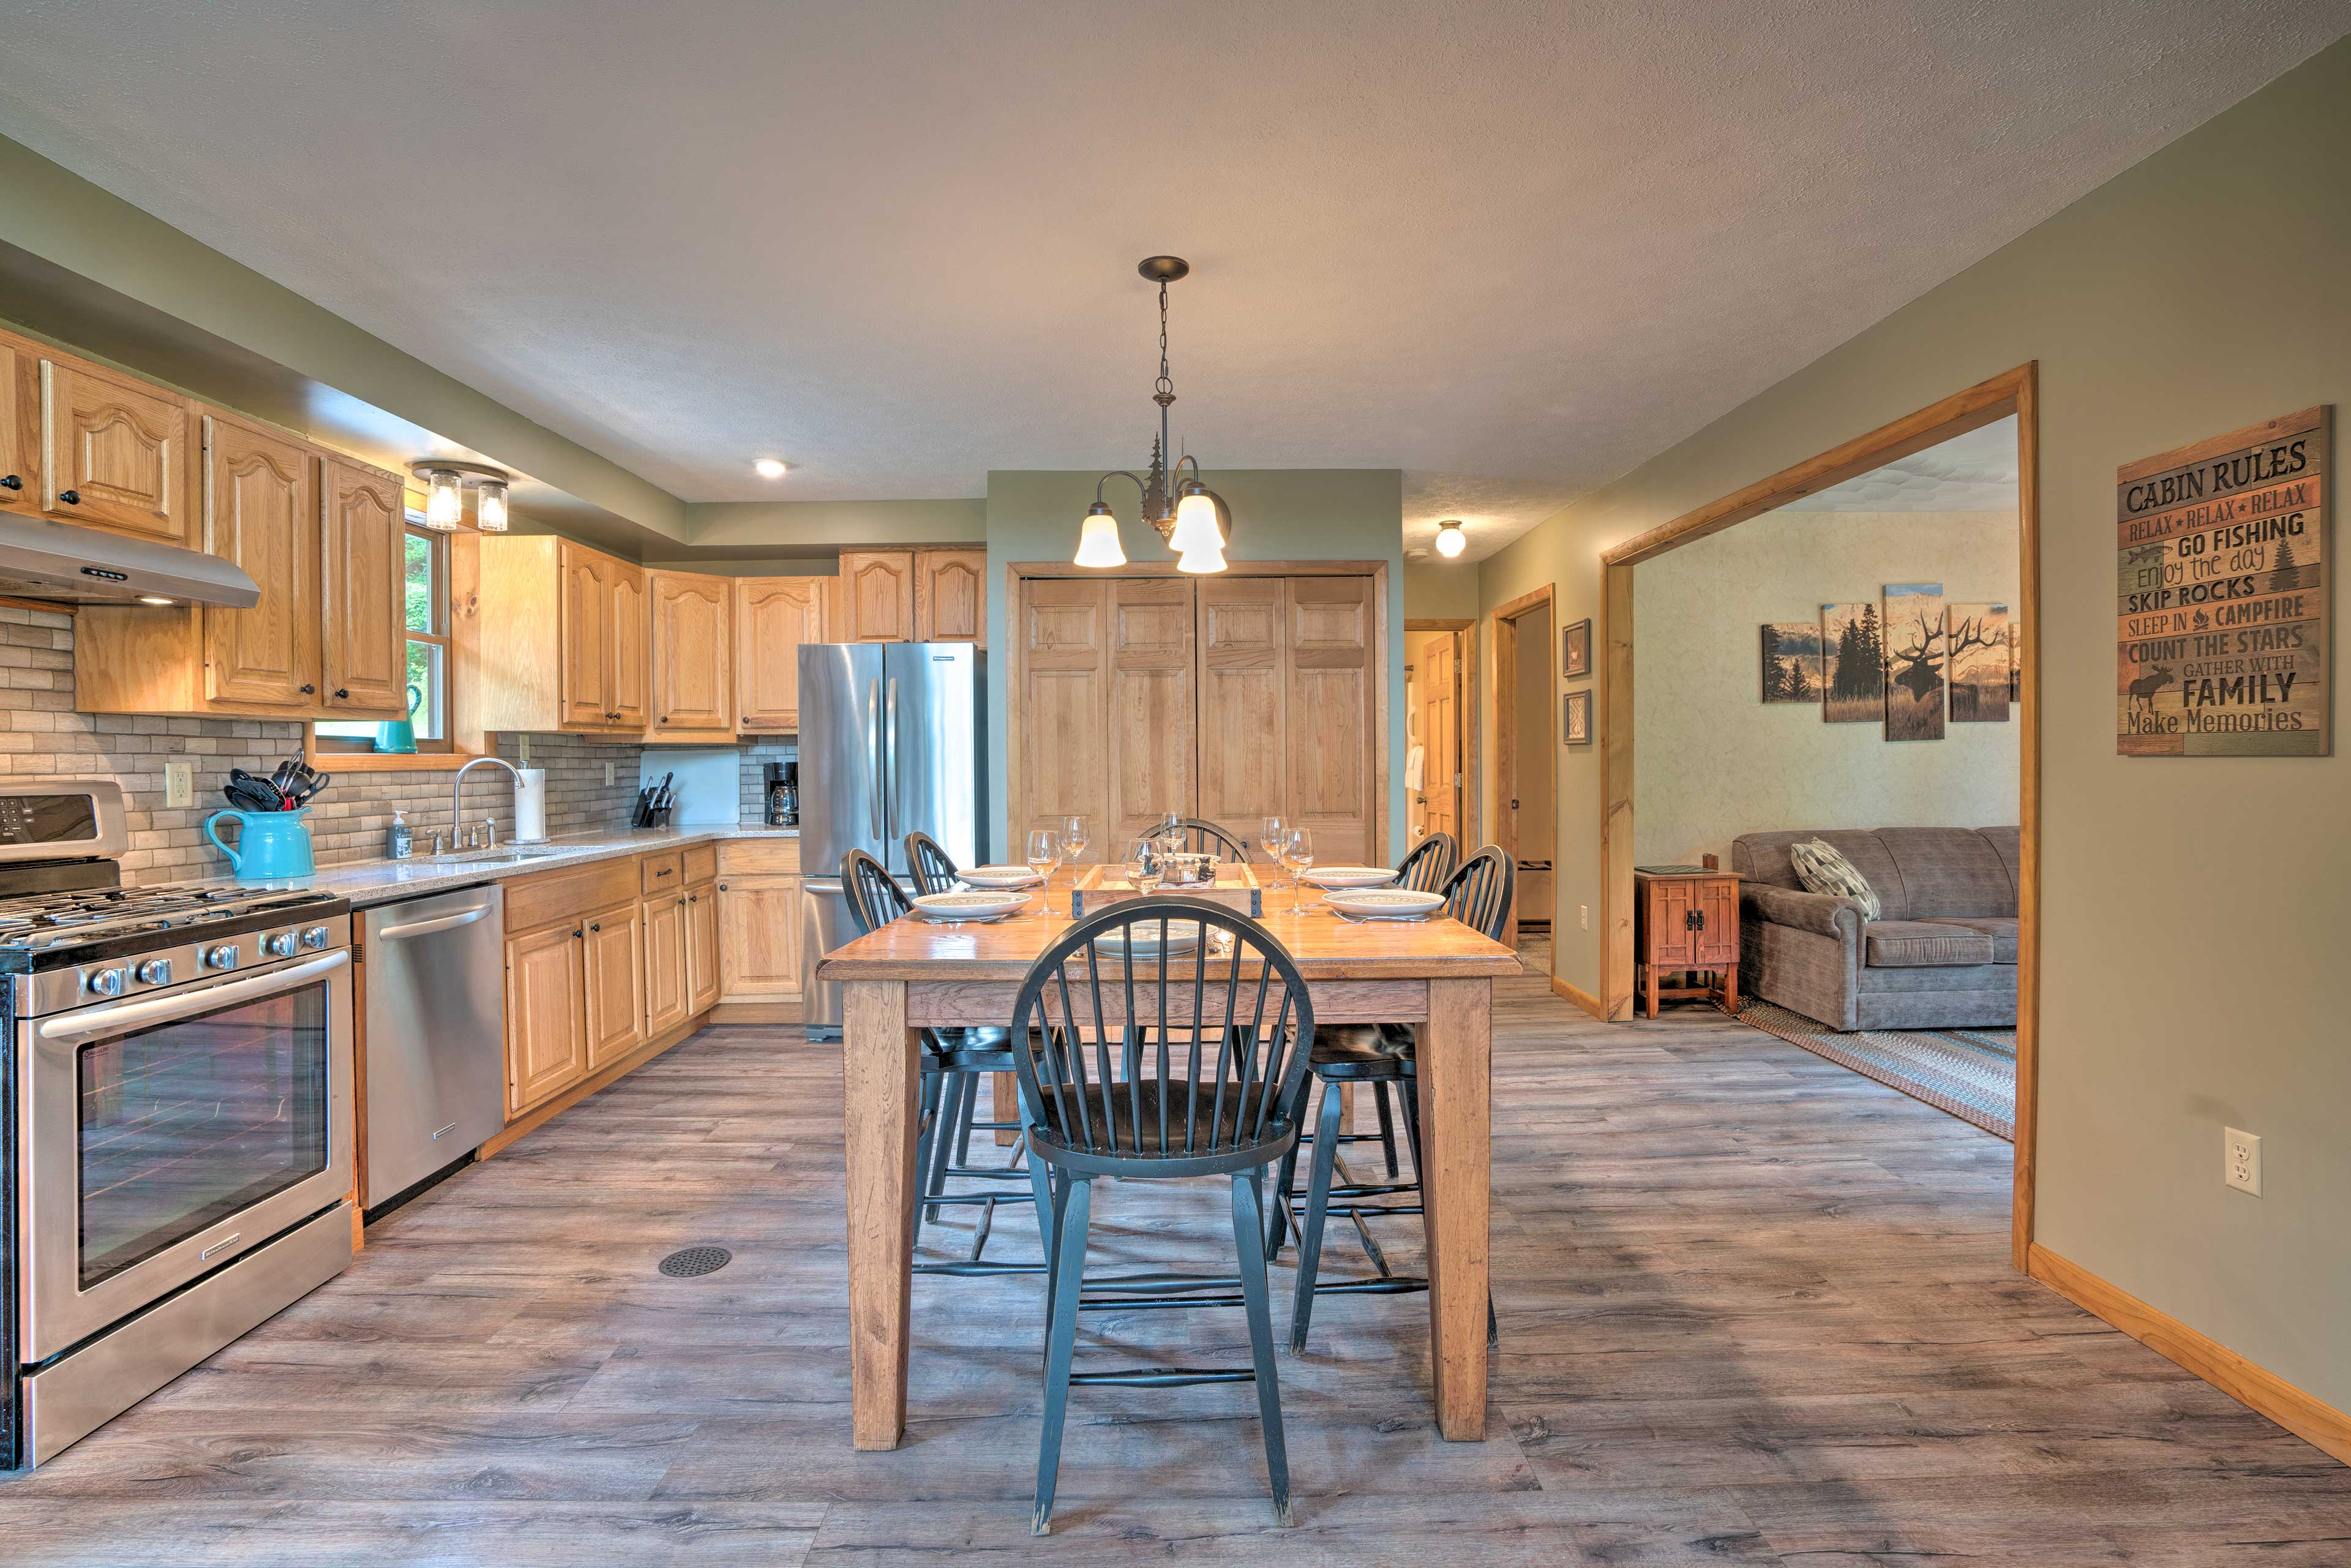 The fully equipped kitchen has everything you need.